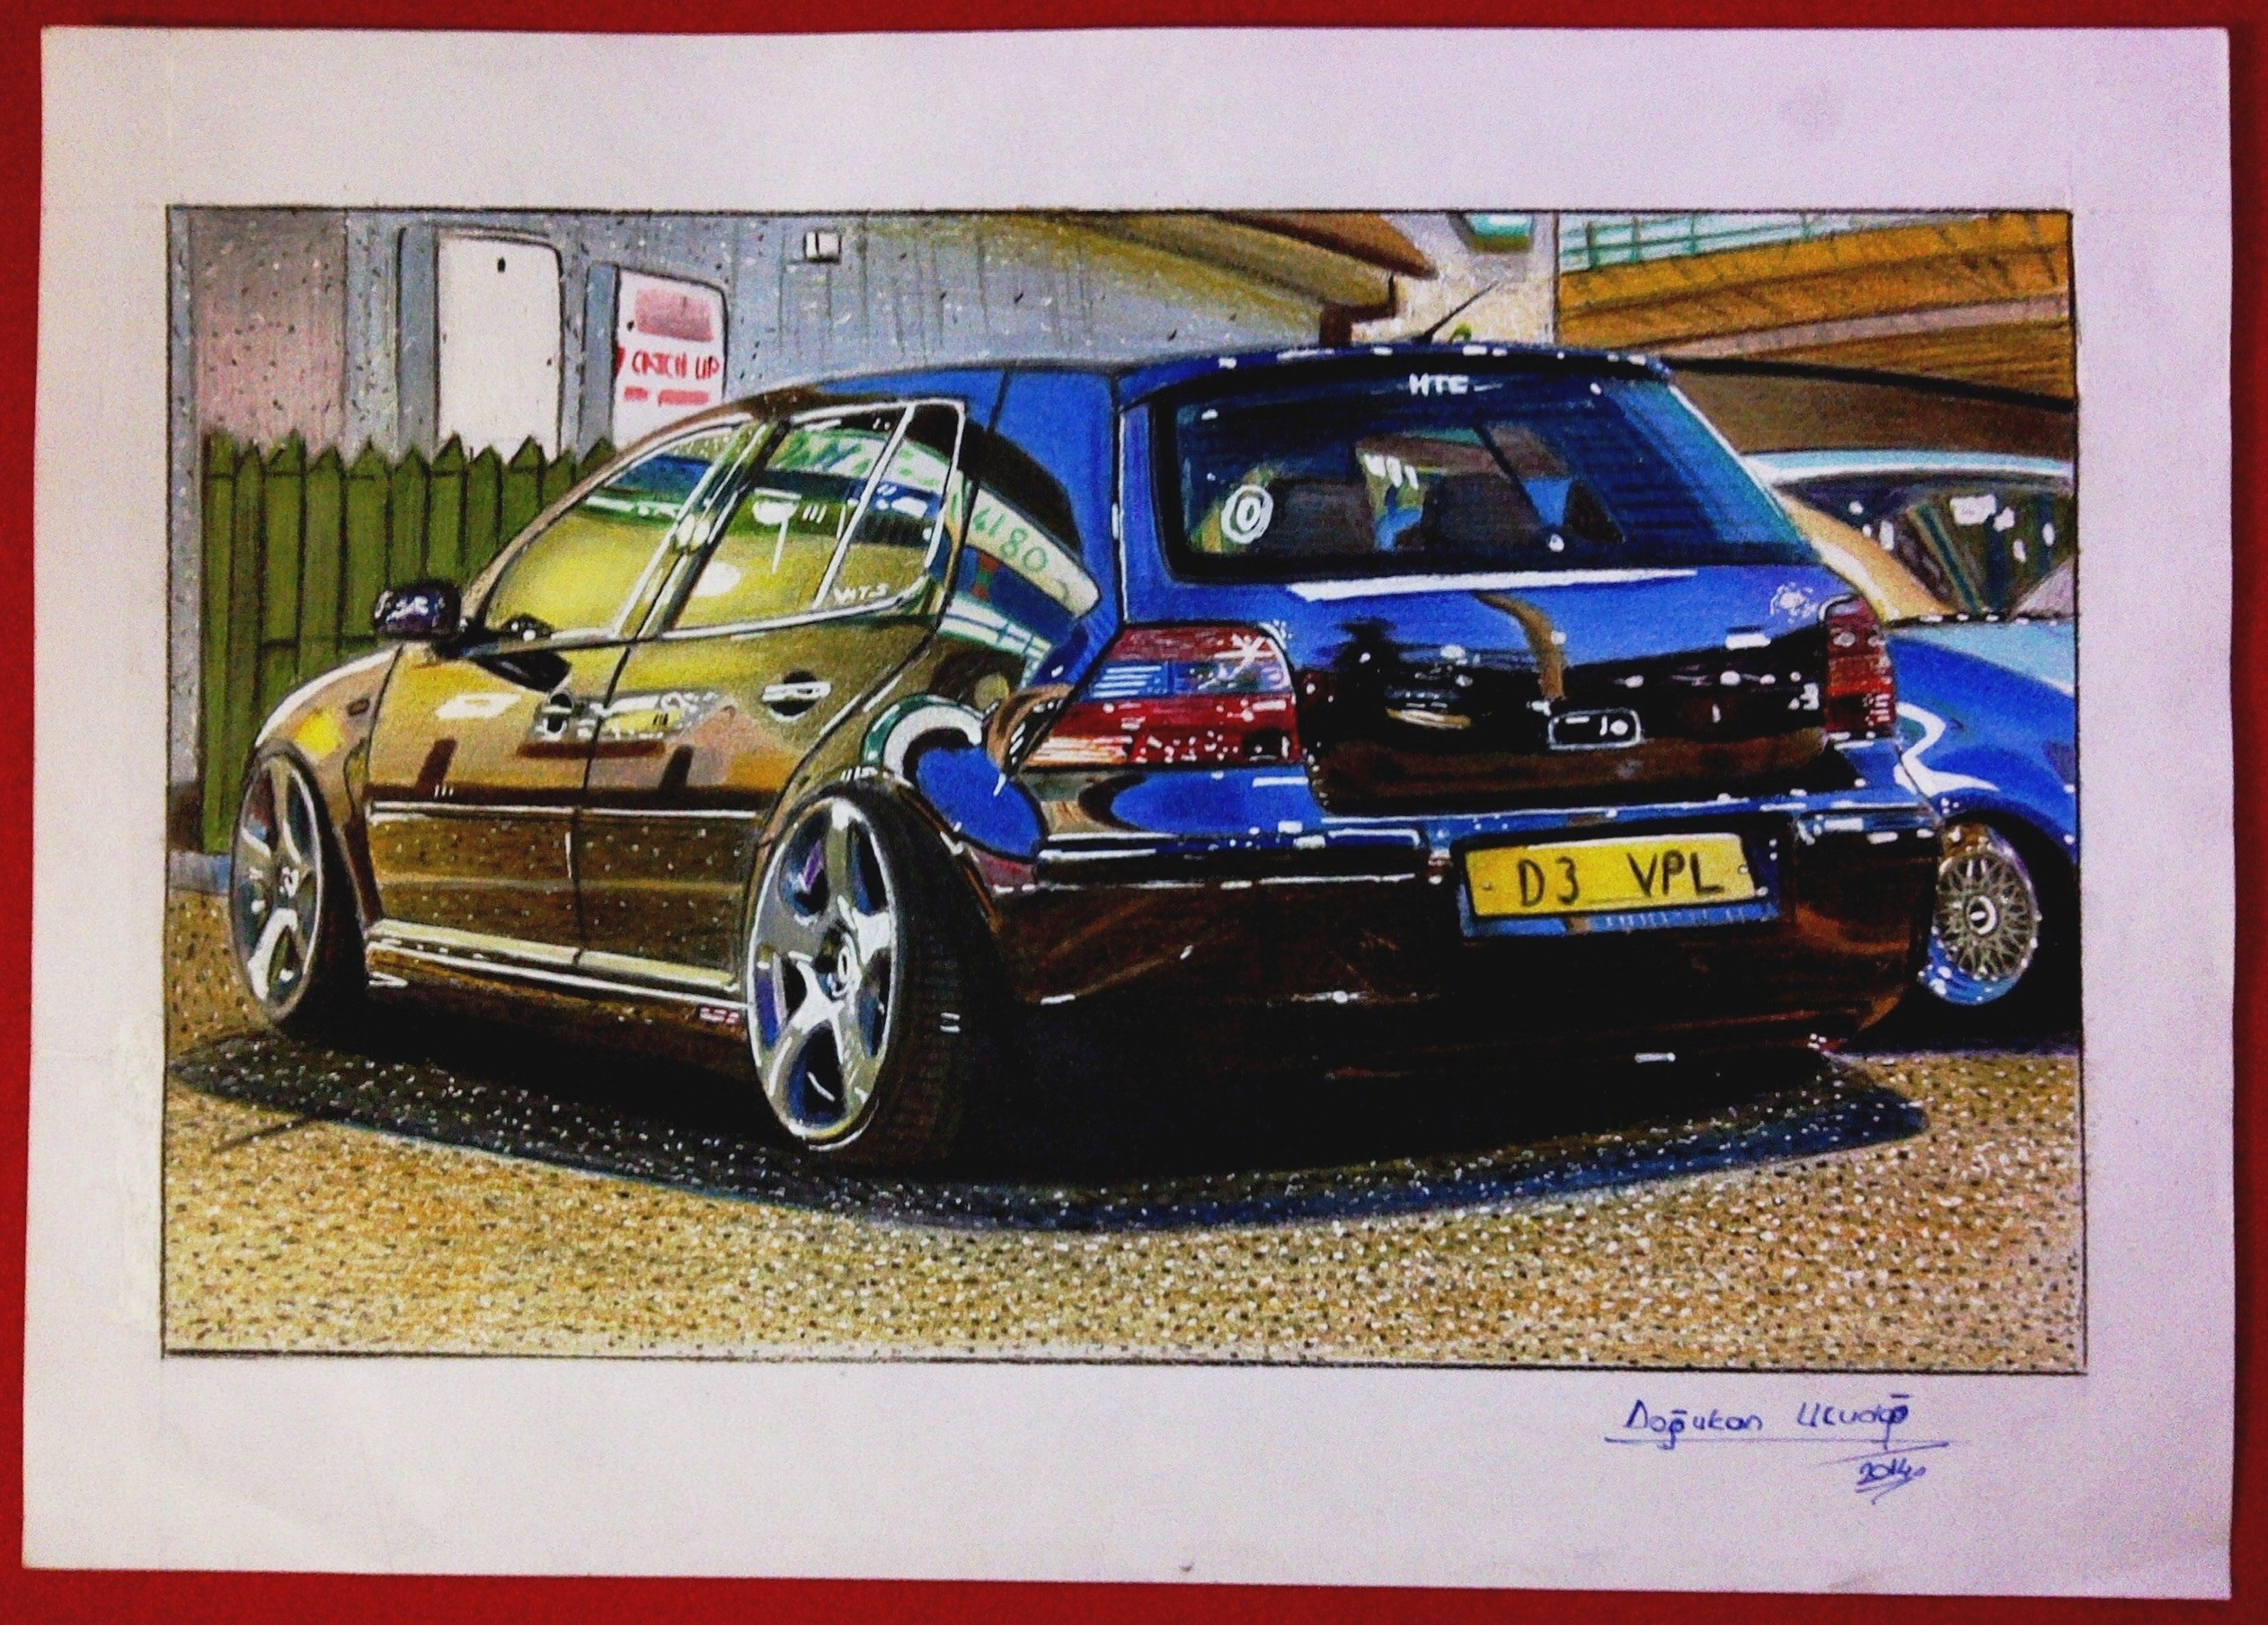 Vw Golf Mk4 Drawing From 2014 I Made It For My Close Friends Birthday Fc Art Grip White Ballpoint Pen